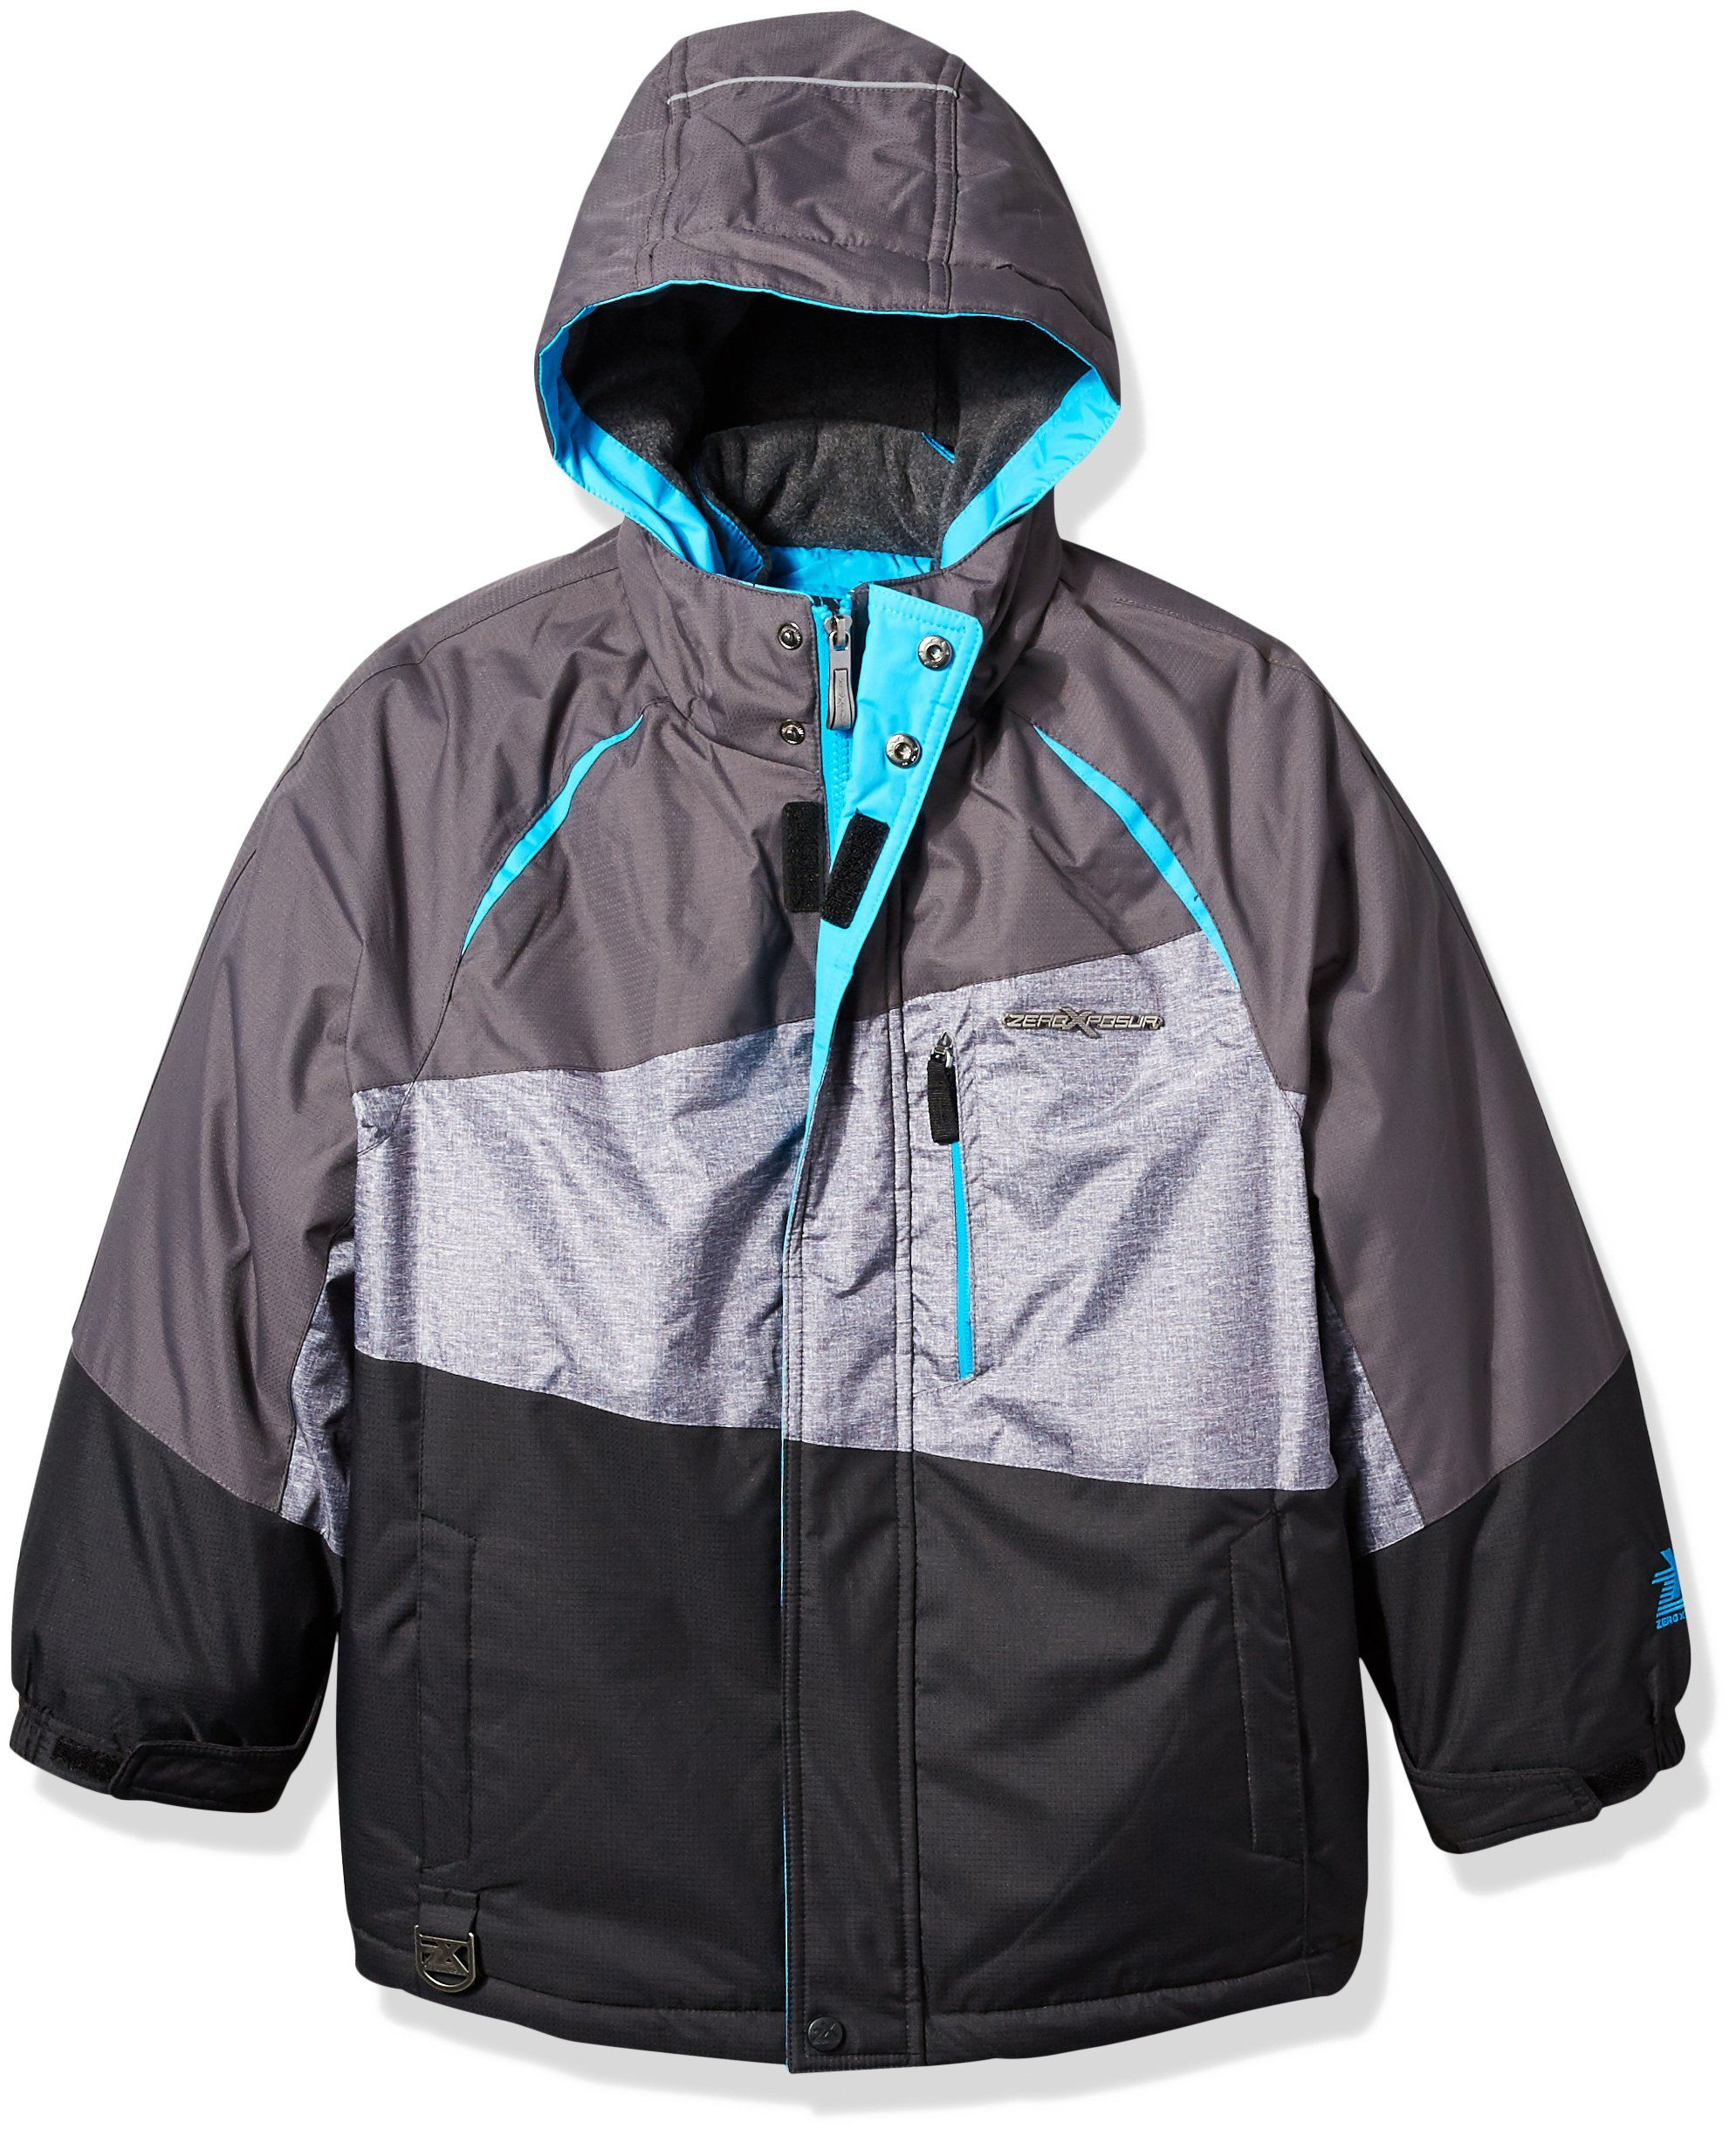 Zeroxposur Big Boys Iceberg 3 In 1 Systems Jacket Black Turquoise M 10 12 Fully Insulated For Warmth The Durable Construction Jackets Athletic Jacket Boys [ 2447 x 1989 Pixel ]